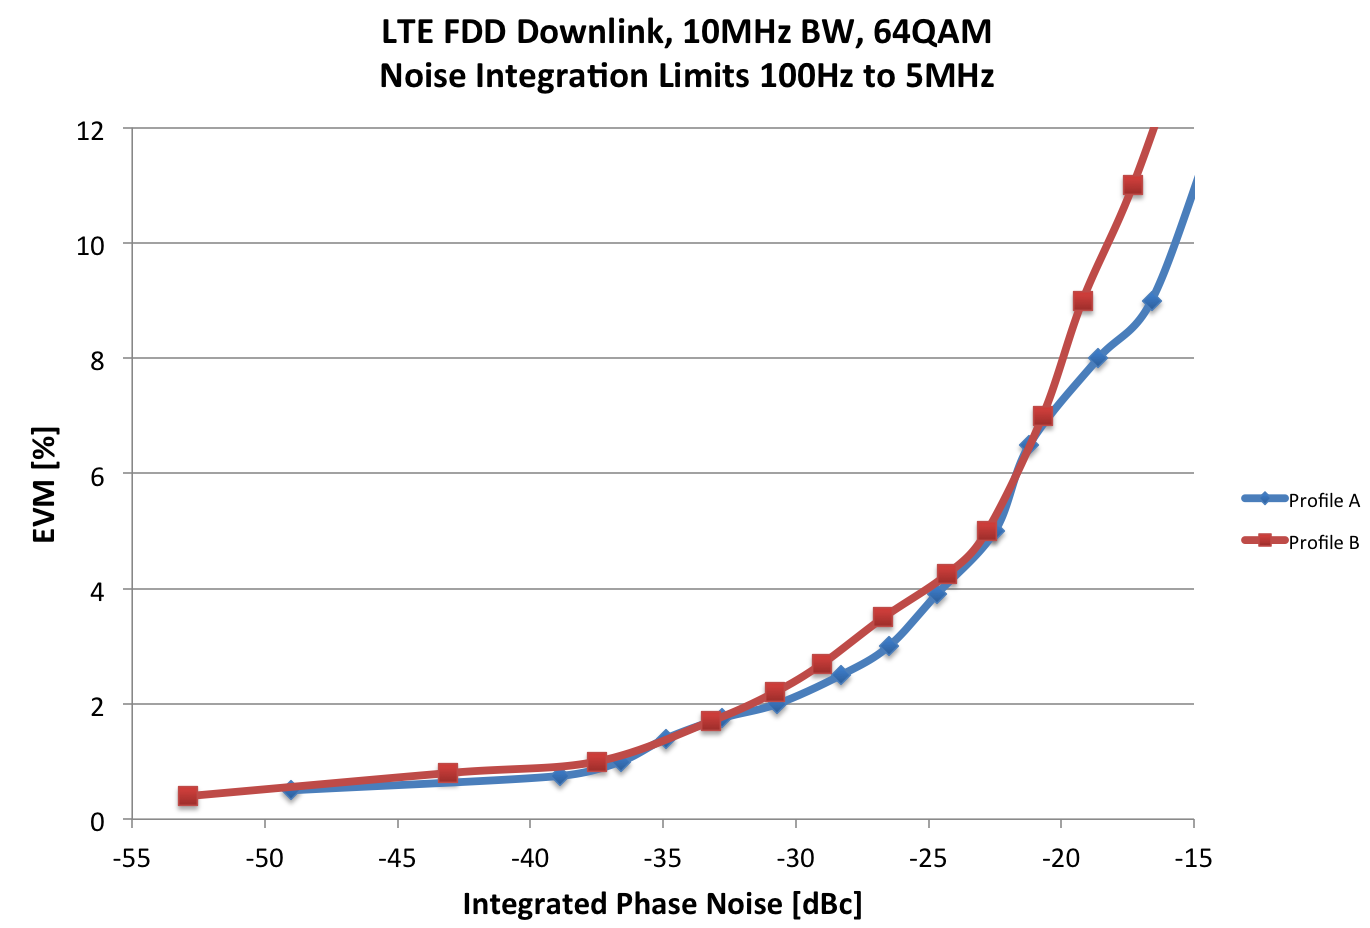 A Impact of Phase Noise on EVM Impact of Phase Noise on TX-EVM of a LTE signal Figure 3-13: Measured EVM versus integrated phase noise for two different noise profiles The measurement results for a